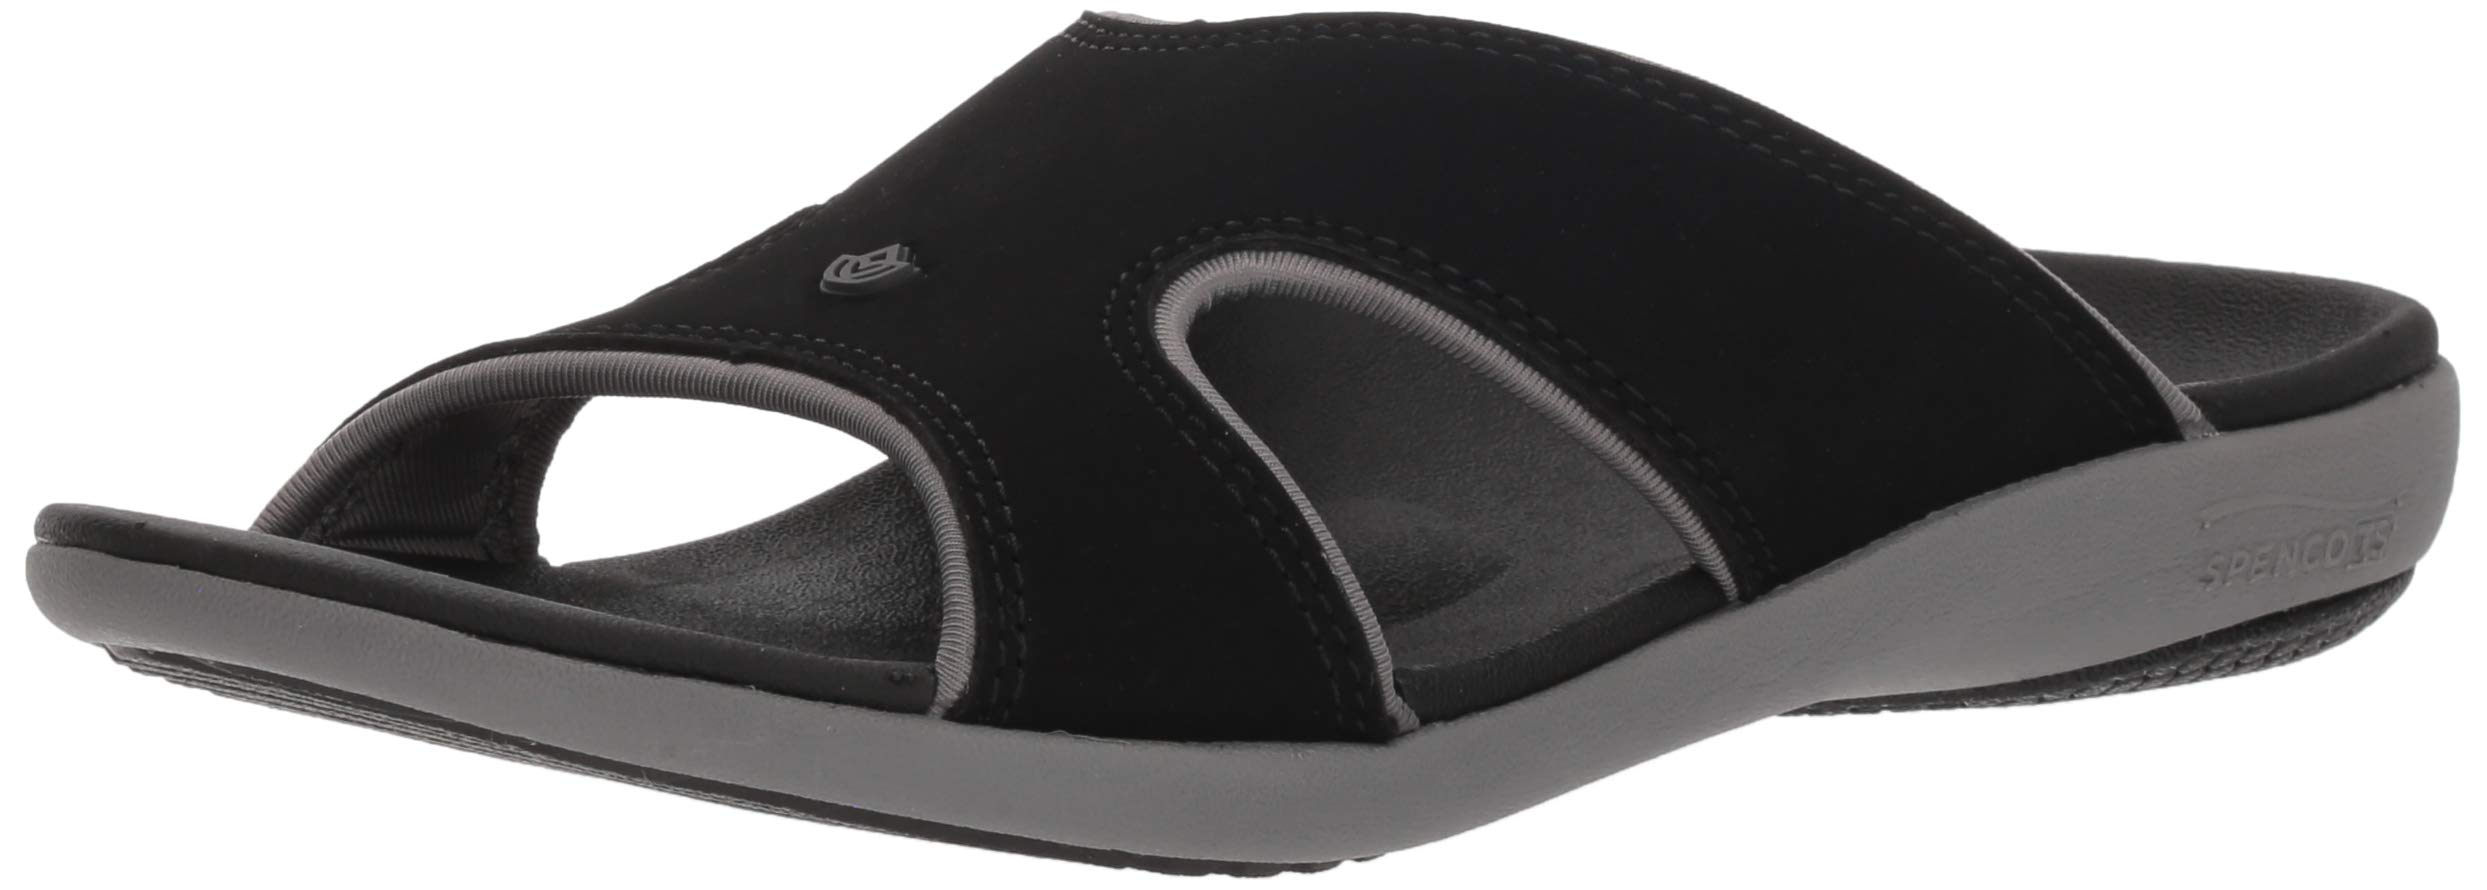 Spenco Women Kholo Plus Slide Sandal, Onyx, 9 Medium US by Spenco